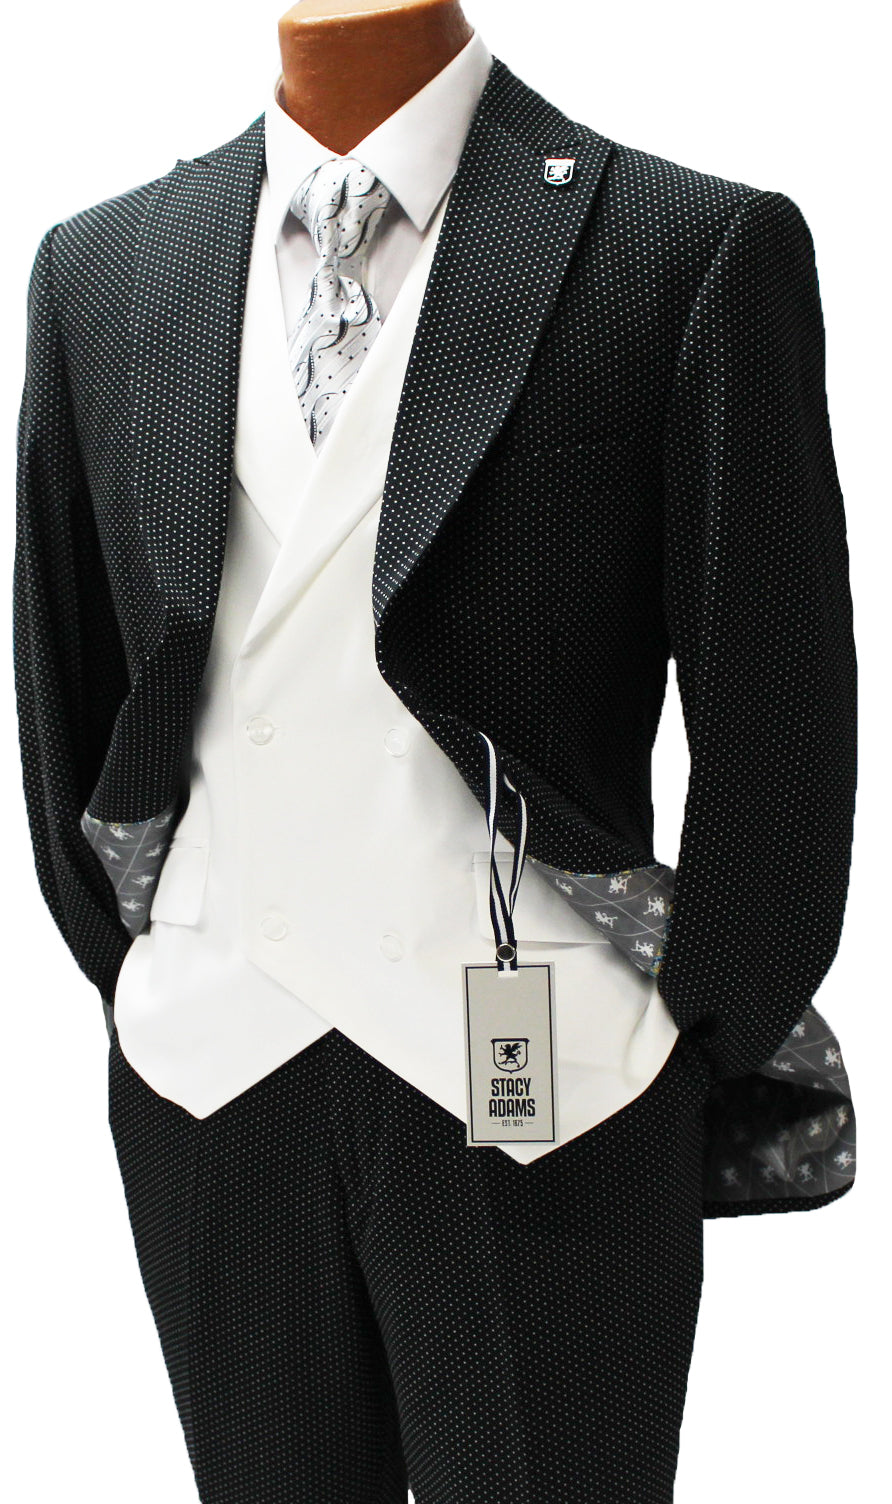 Ken Black and White Polka Dot Vested Classic Fit Suit